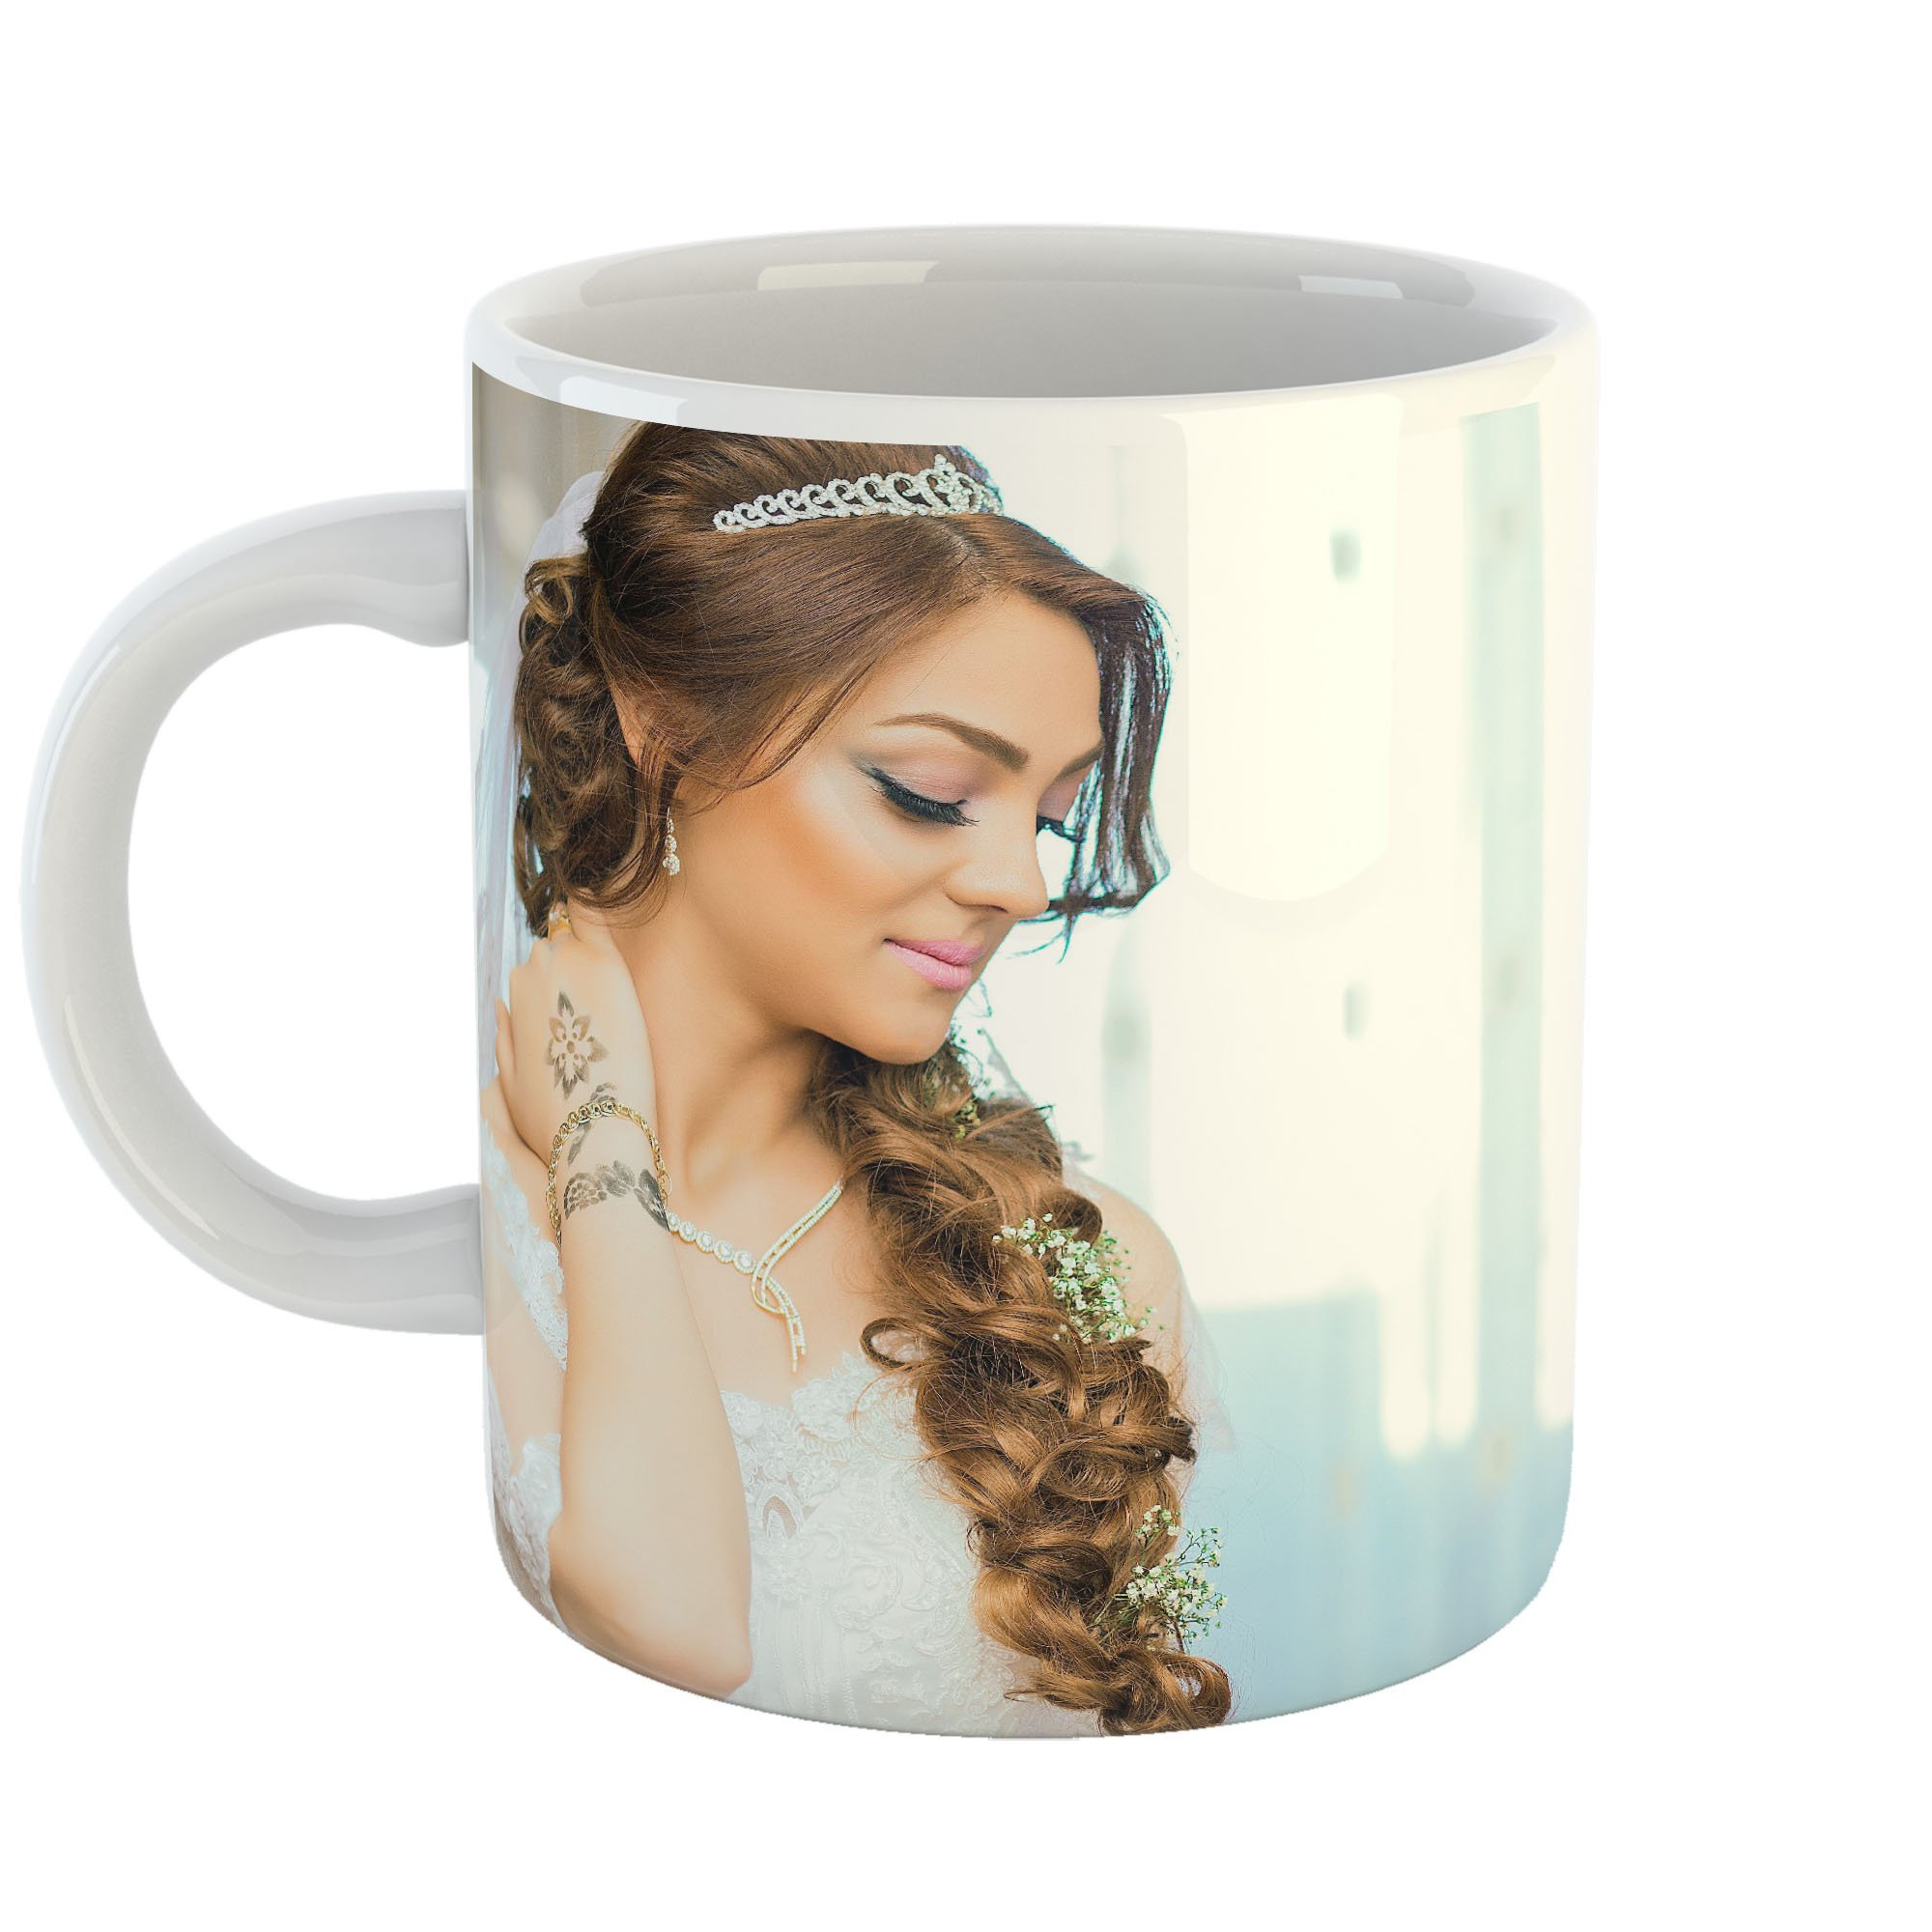 Westlake Art - Spa Wedding - 11oz Coffee Cup Mug - Modern Picture Photography Artwork Home Office Birthday Gift - 11 Ounce (5955-39A9F)